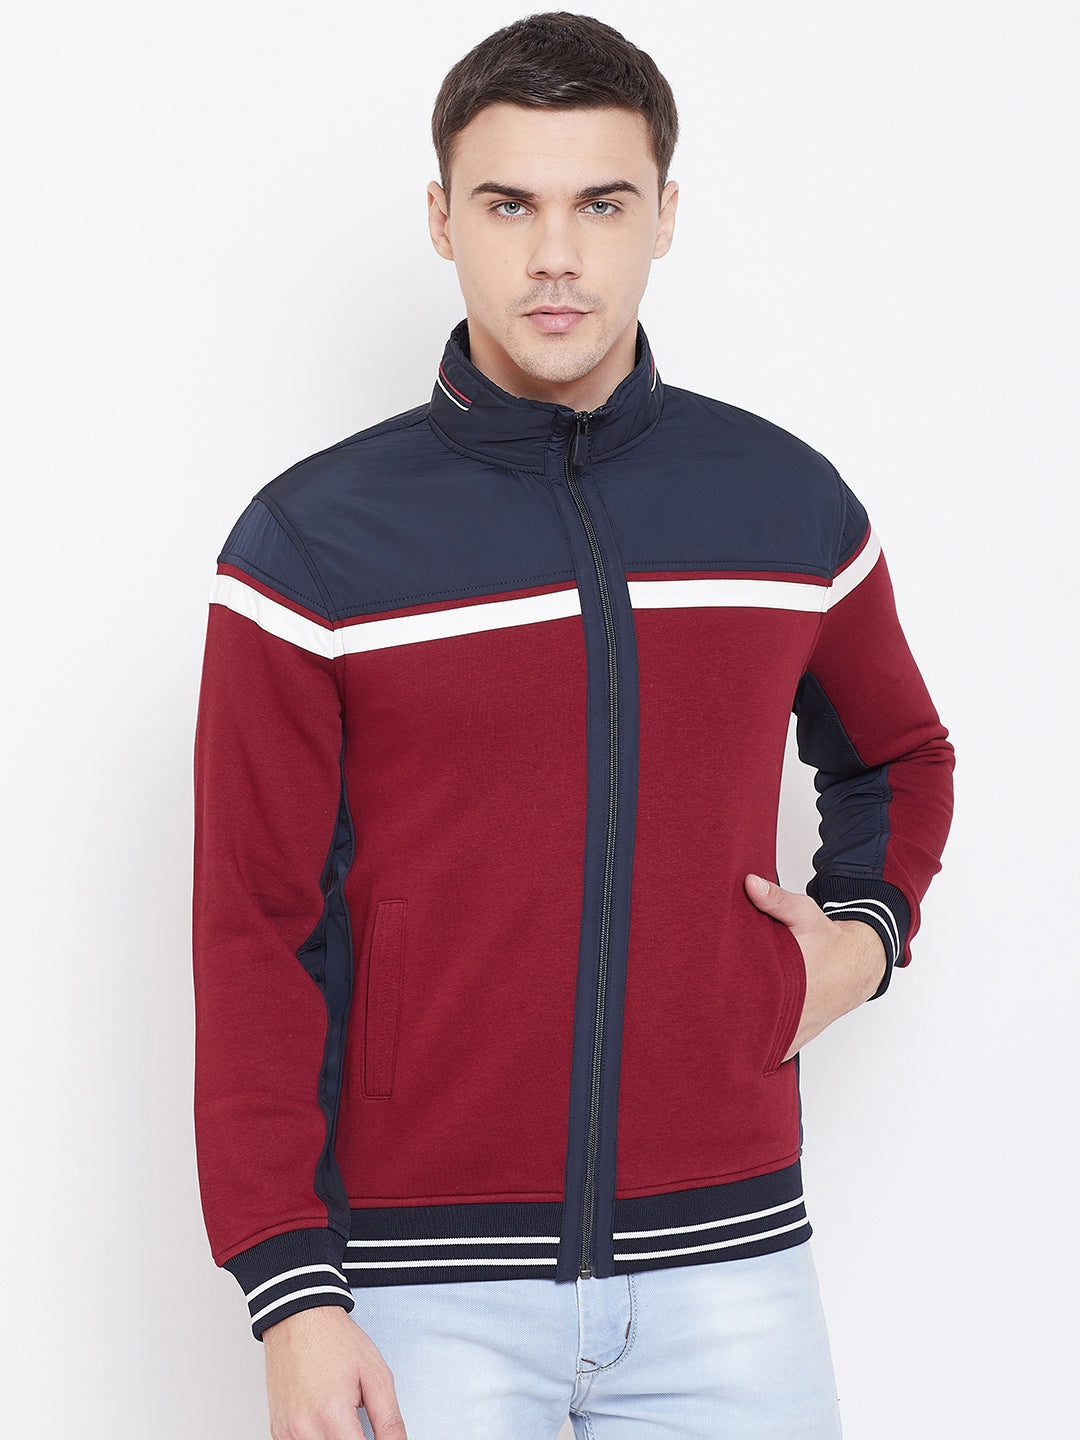 Octave Apparels Red and Blue Jacket for Men